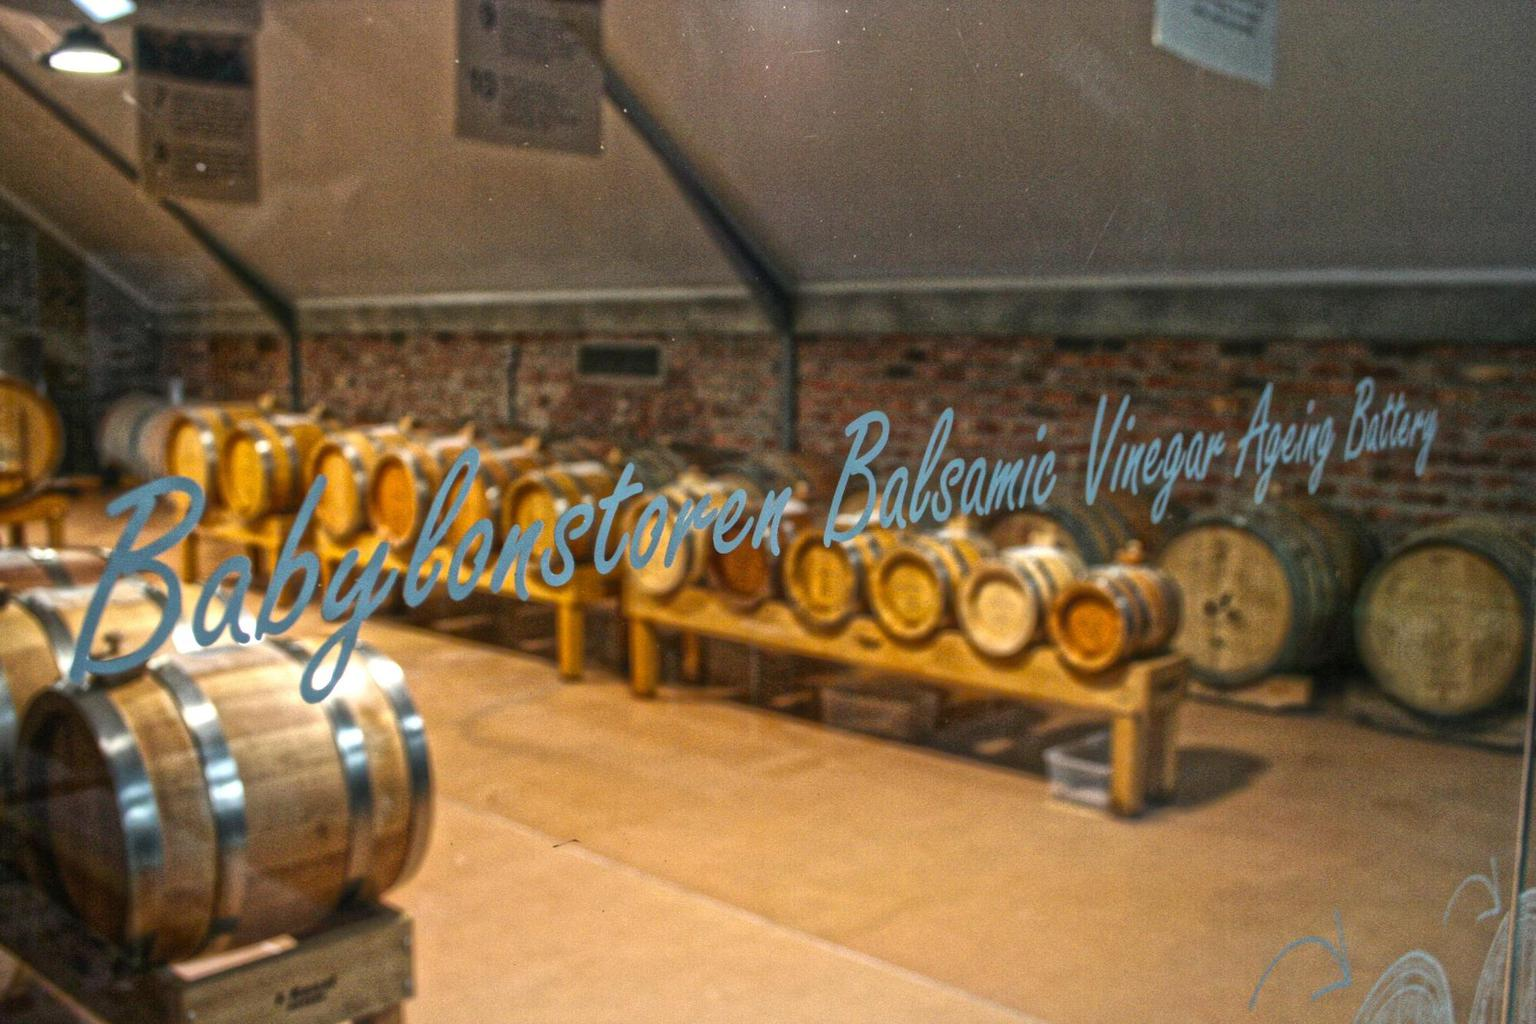 Balsamic vinegar ageing battery at Babylonstoren